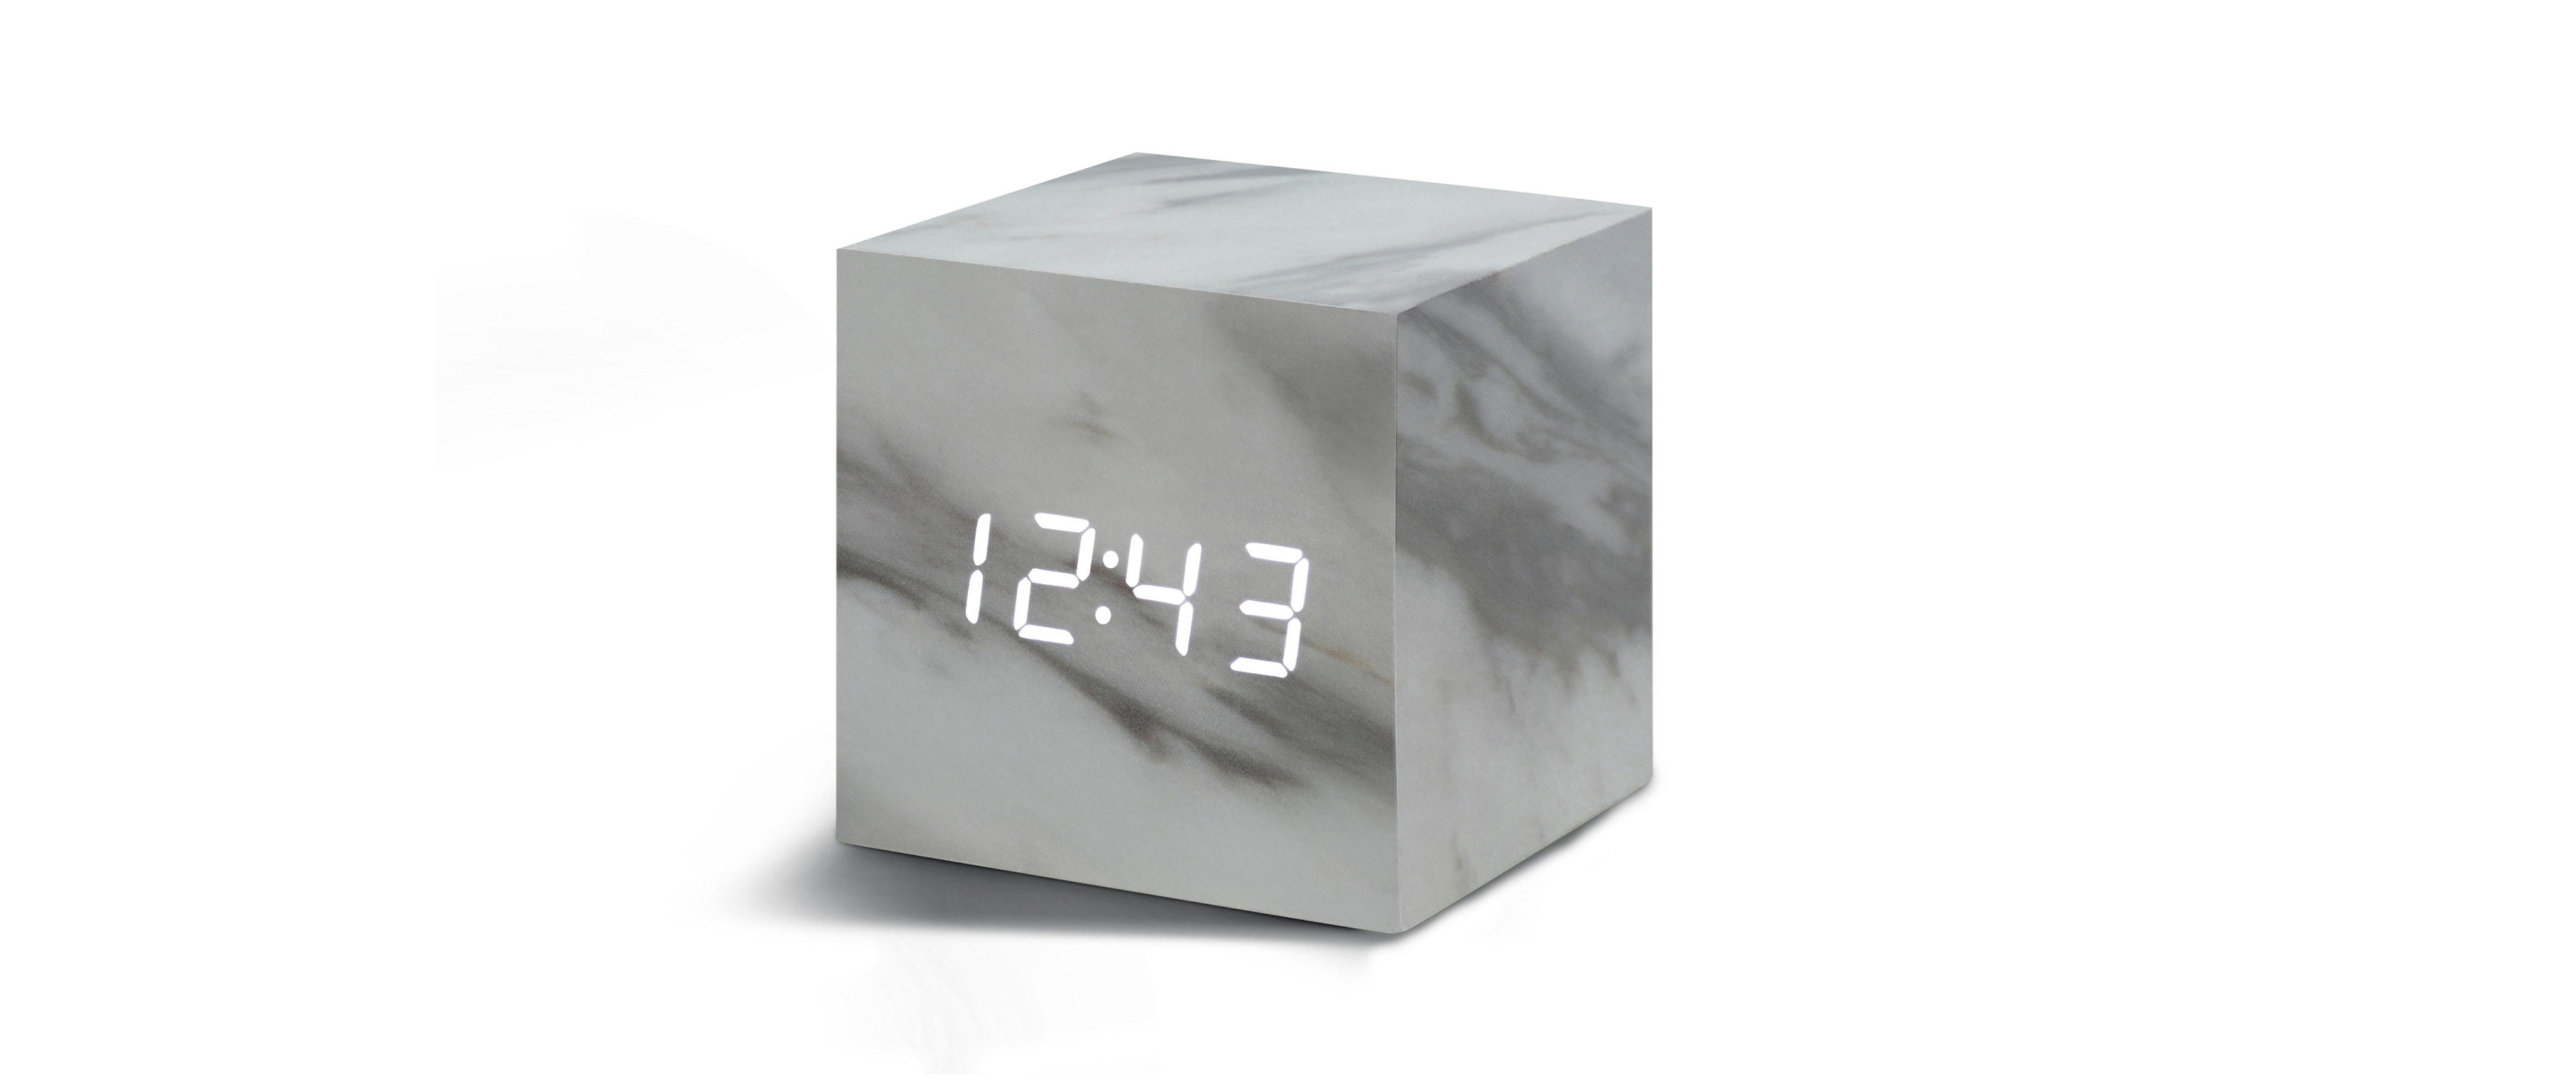 cube marble click clock  cube click clock  gingko - time can be smart clever ultrastylish functional and simple with thiscube marble alarm clock